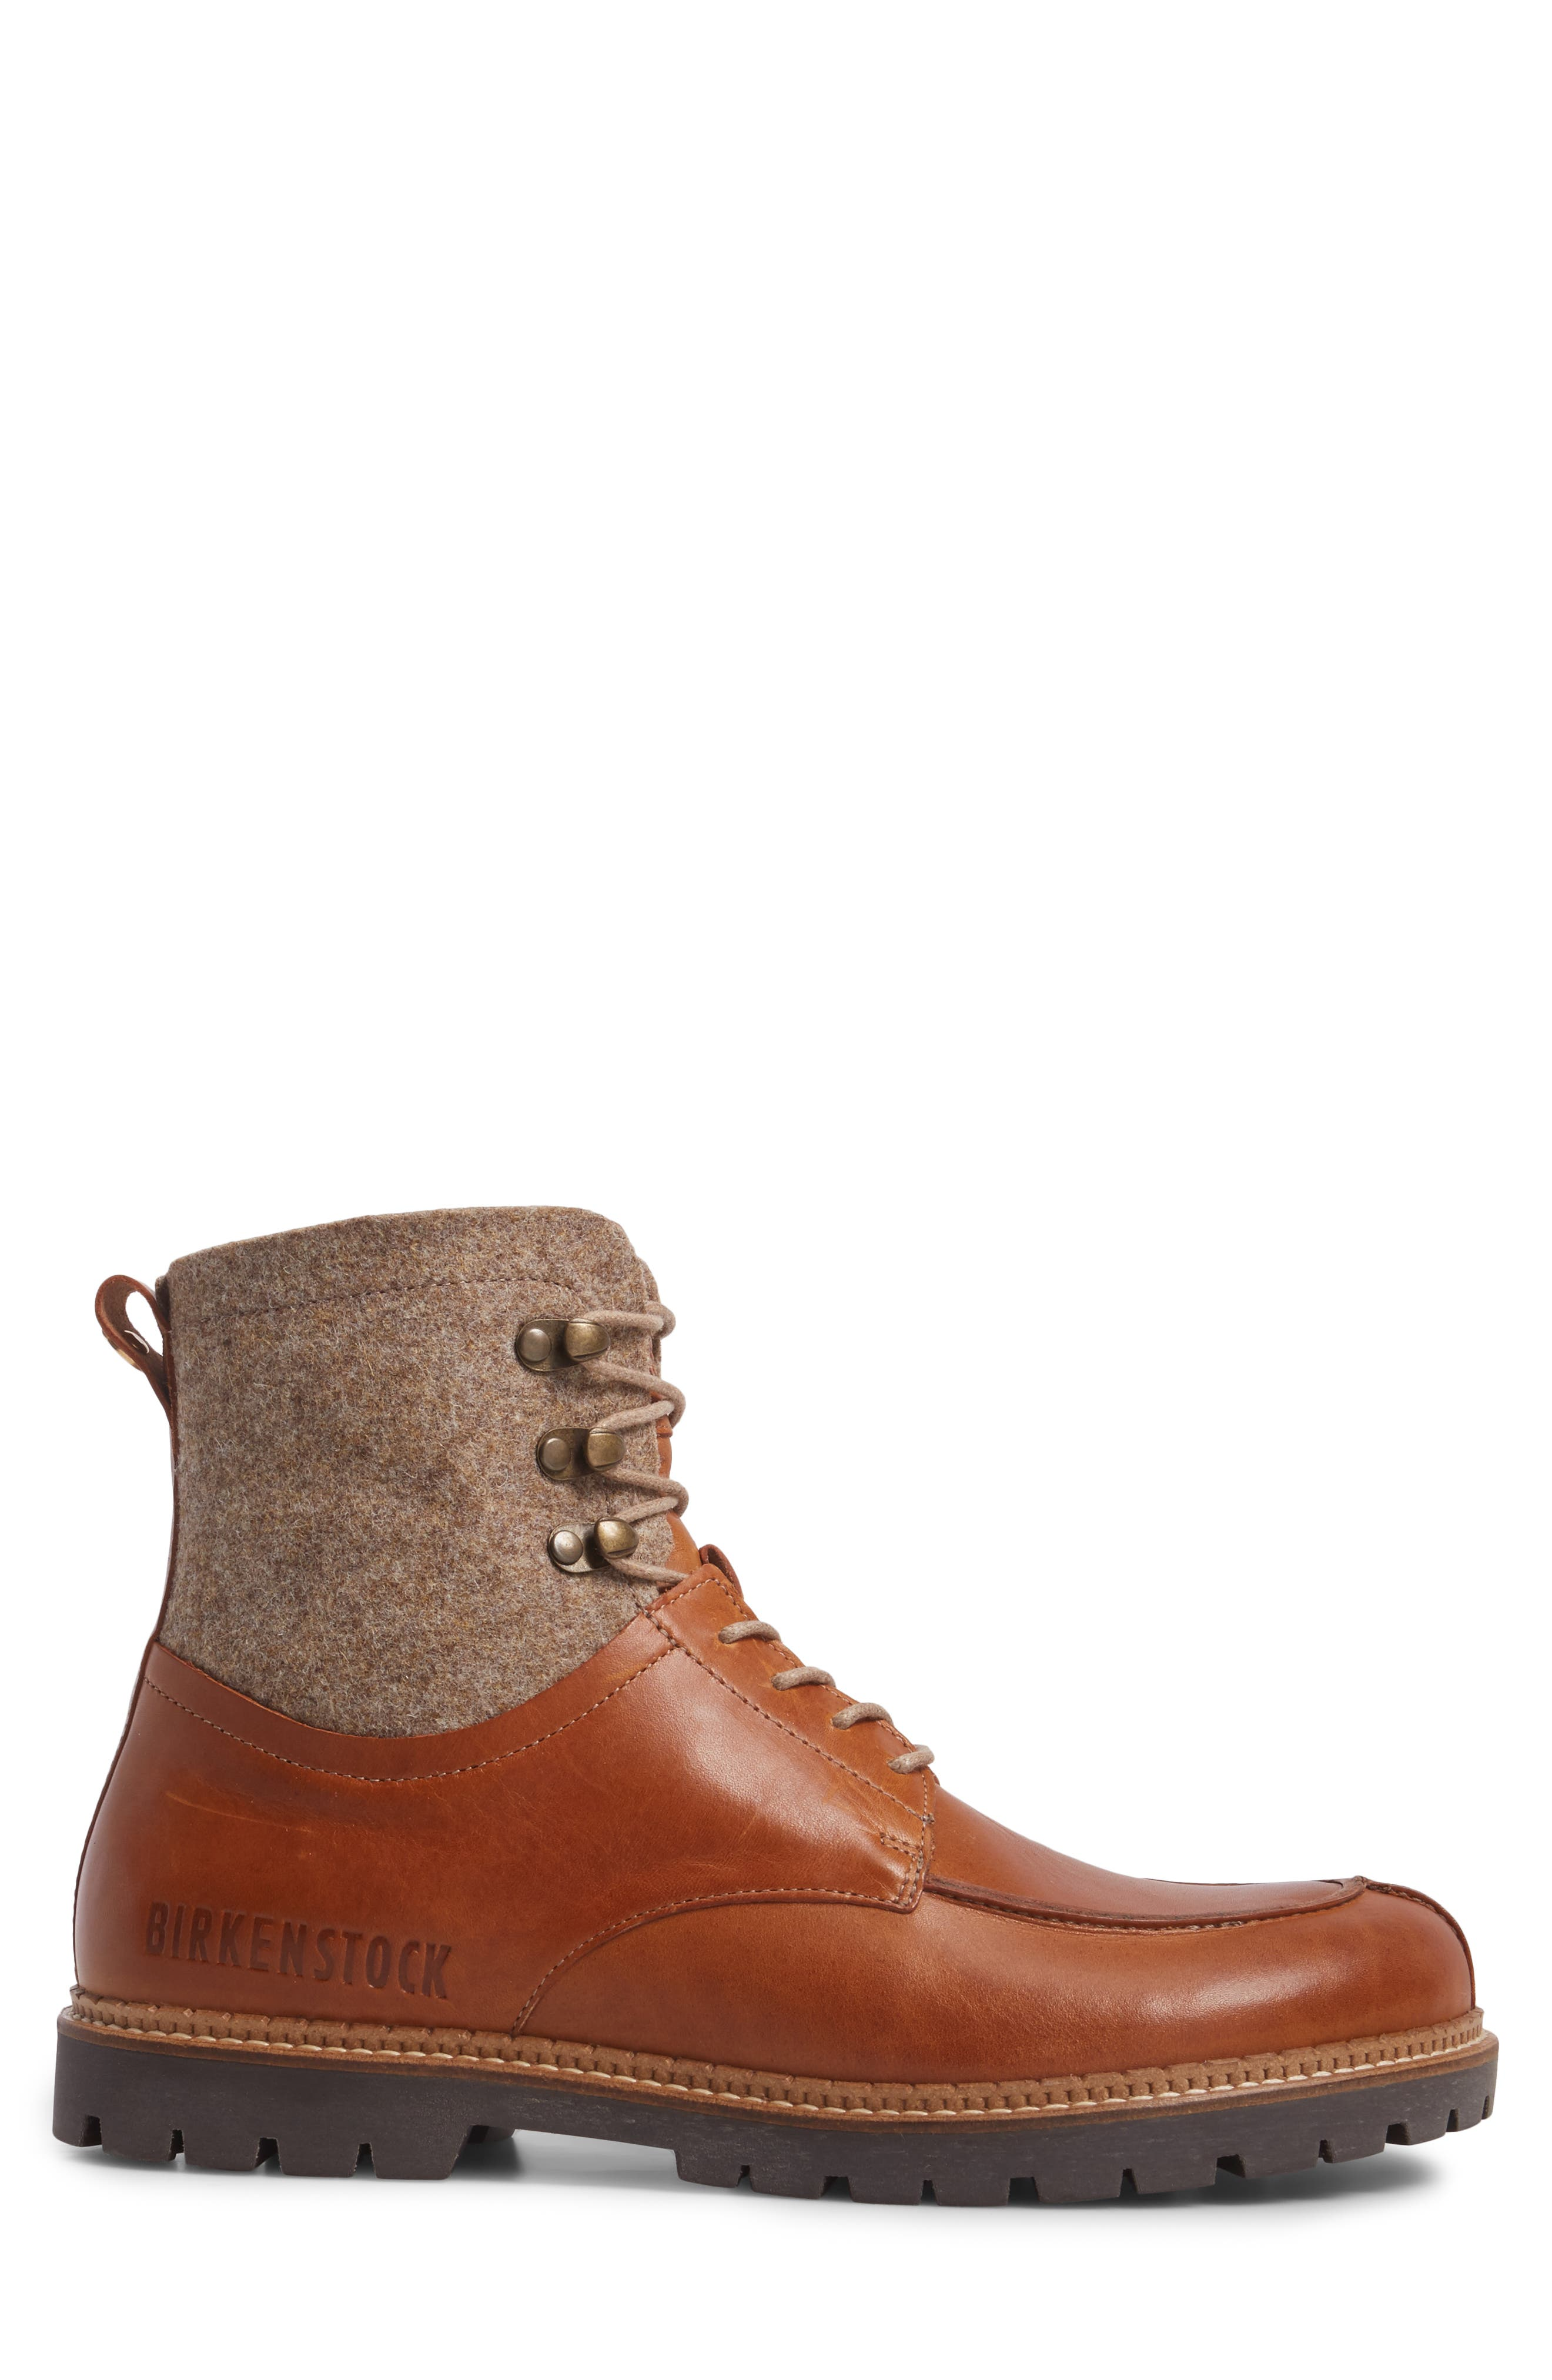 Timmins Split Toe Boot,                             Alternate thumbnail 2, color,                             Cuoio